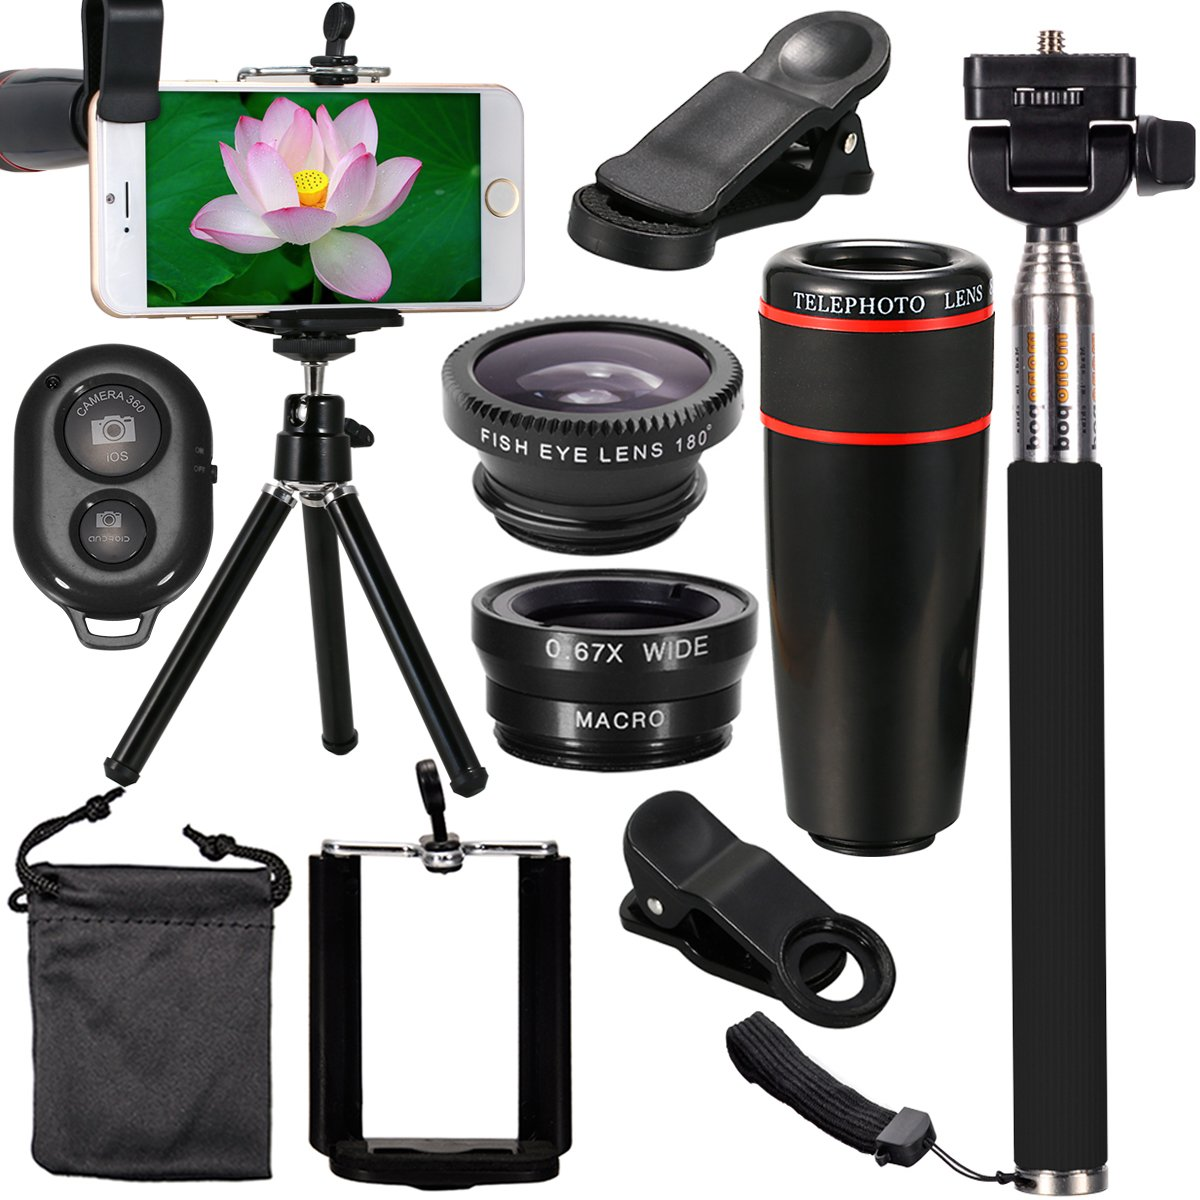 XCSOURCE 10 in 1 Mini Lens Kit 8 x Telephoto Lens + Fish Eye Lens + Wide Angle + Macro Lens Selfie Stick + BT Remote Control + Mini Tripod for iPhone 5 6 7 Galaxy S5 S6 Edge Note 2 3 4 HTC LG